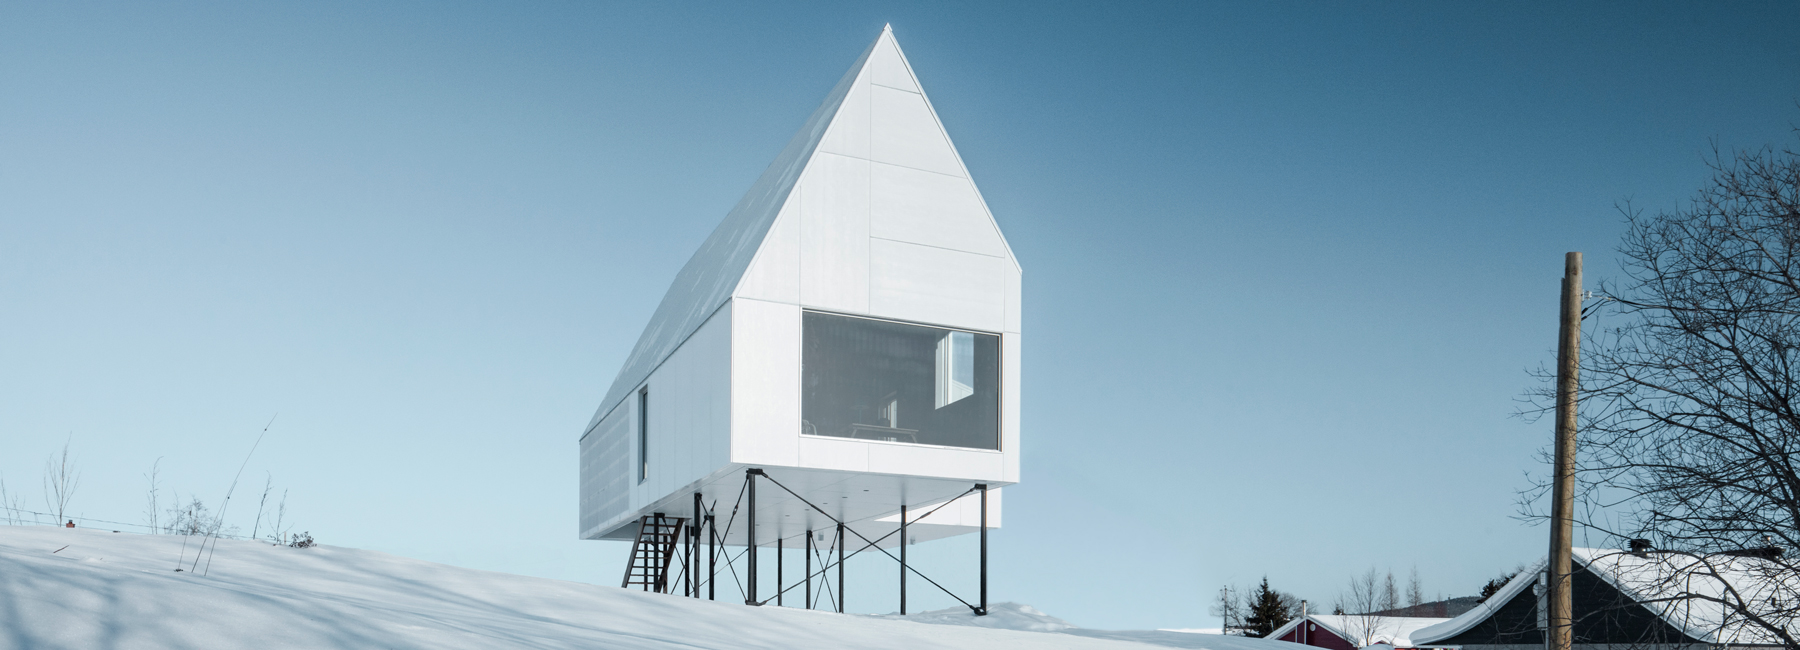 The high house above snowy quebec countryside by delordinaire for Minimalist house quebec